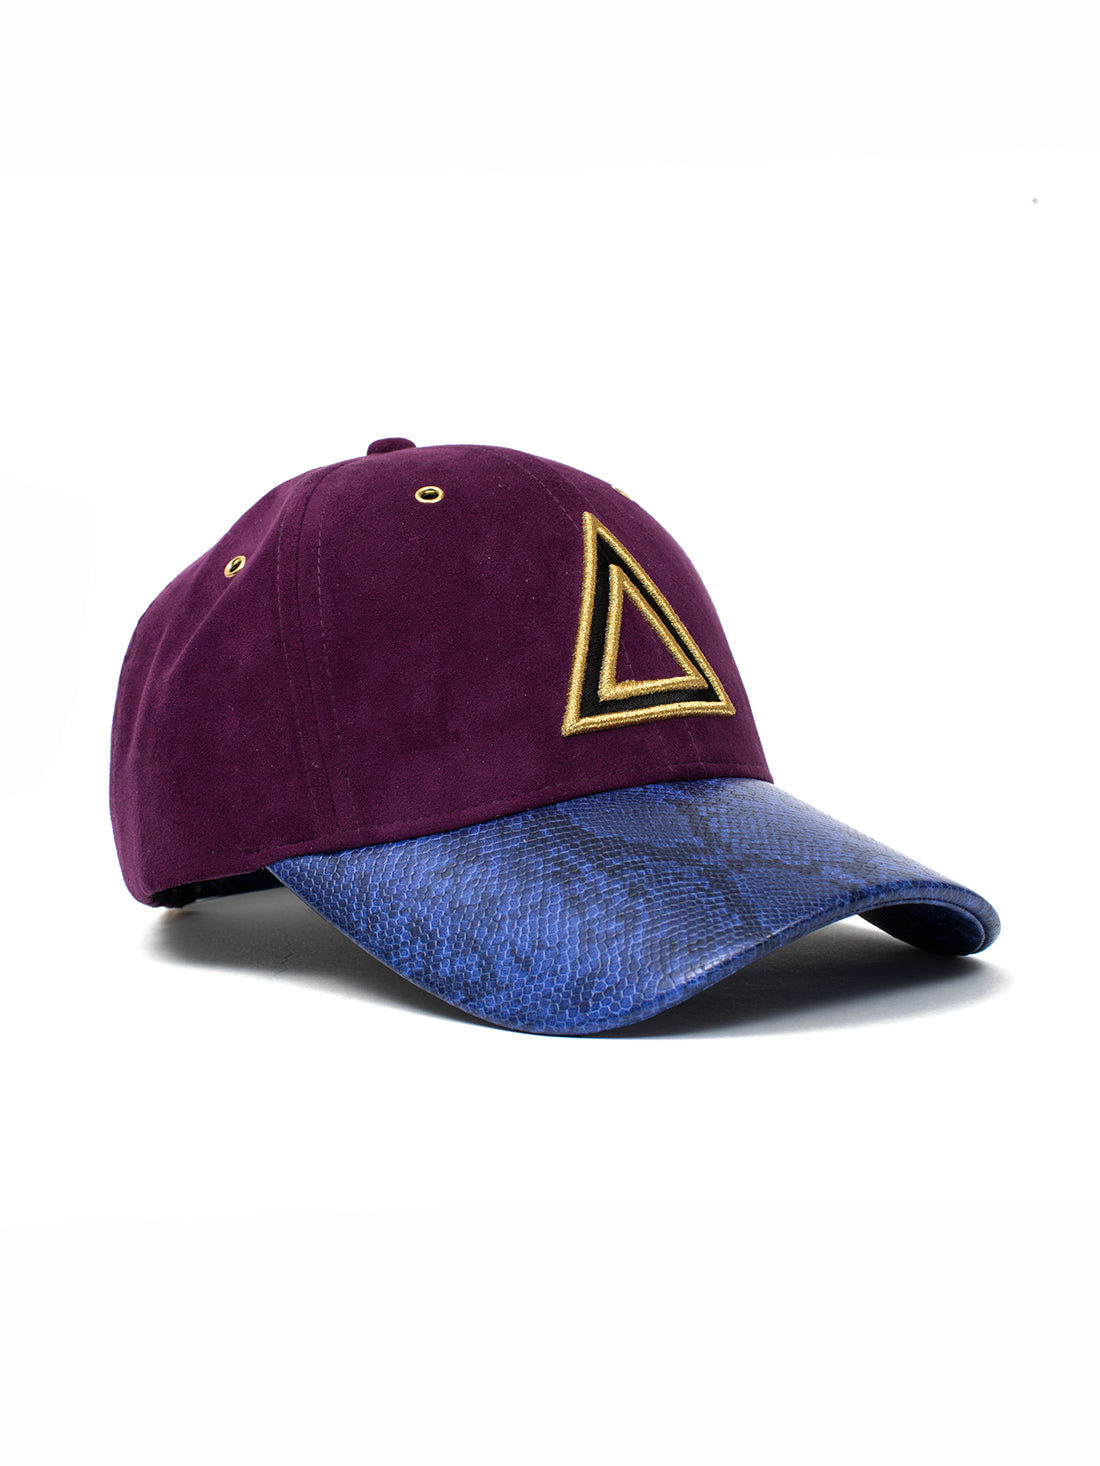 PURPLE SUEDE SNAKESKIN DAD HAT